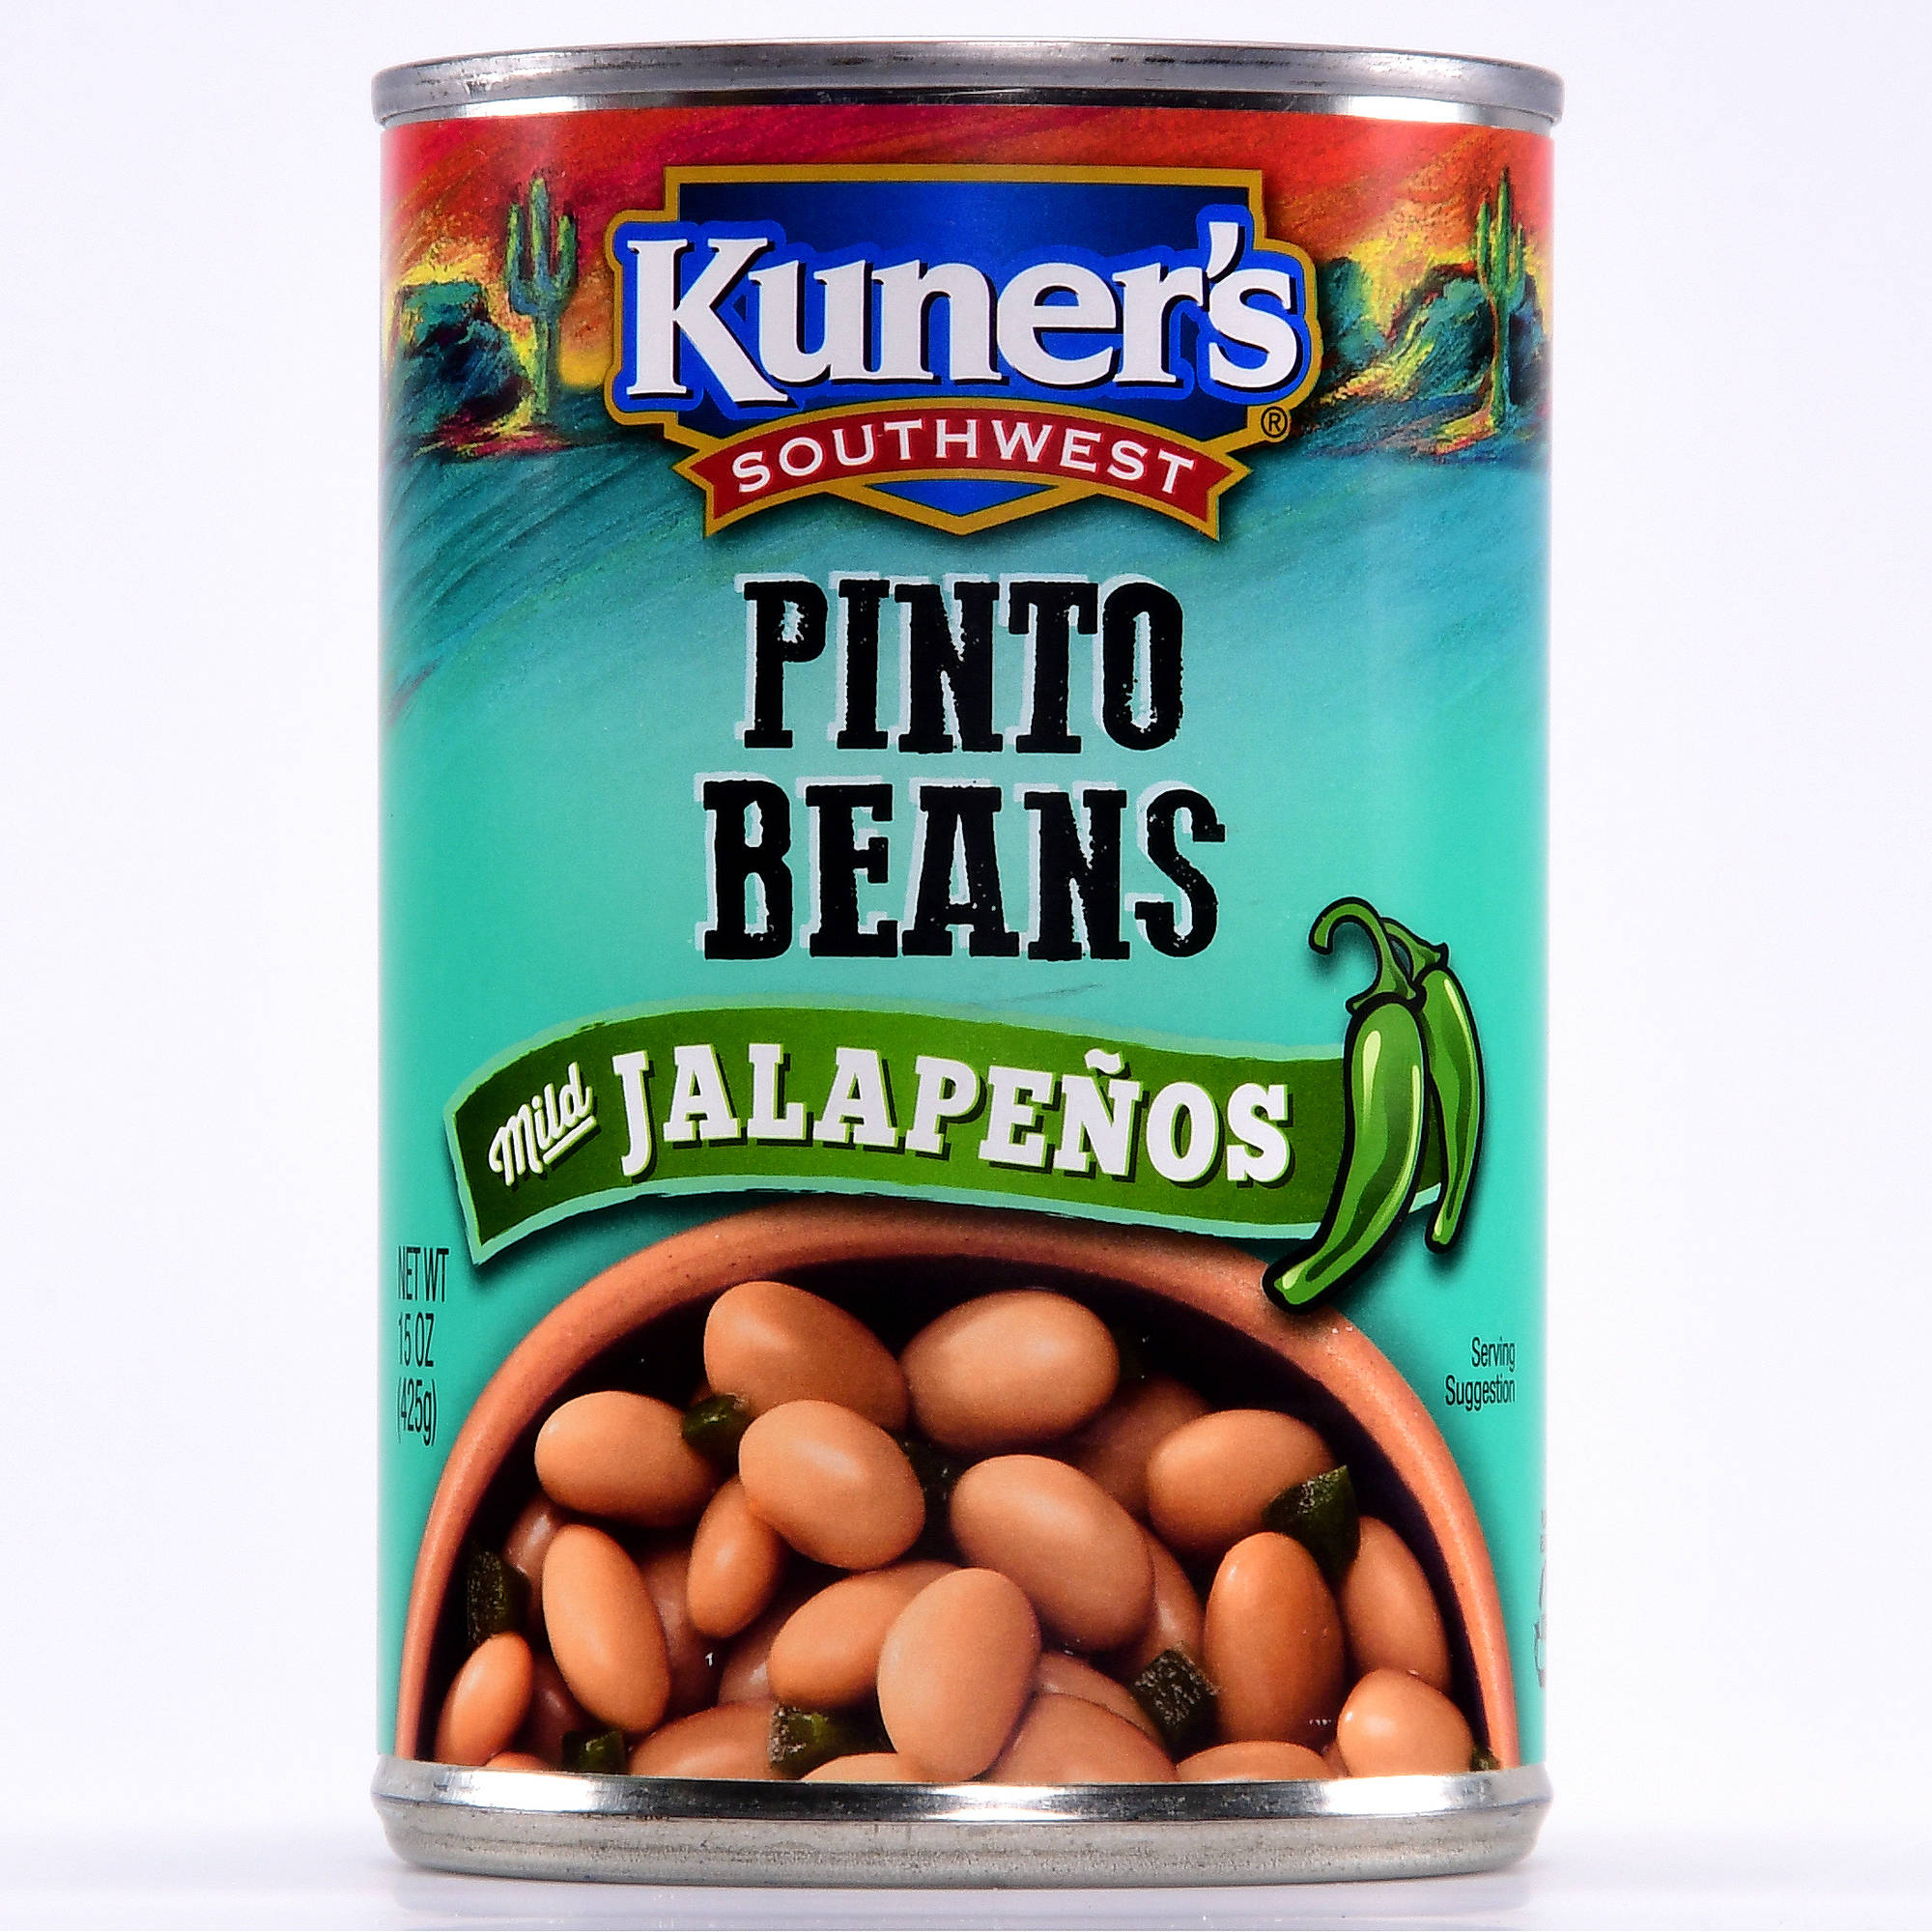 Kuner's Southwestern Pinto With Jalapenos Beans, 15 oz